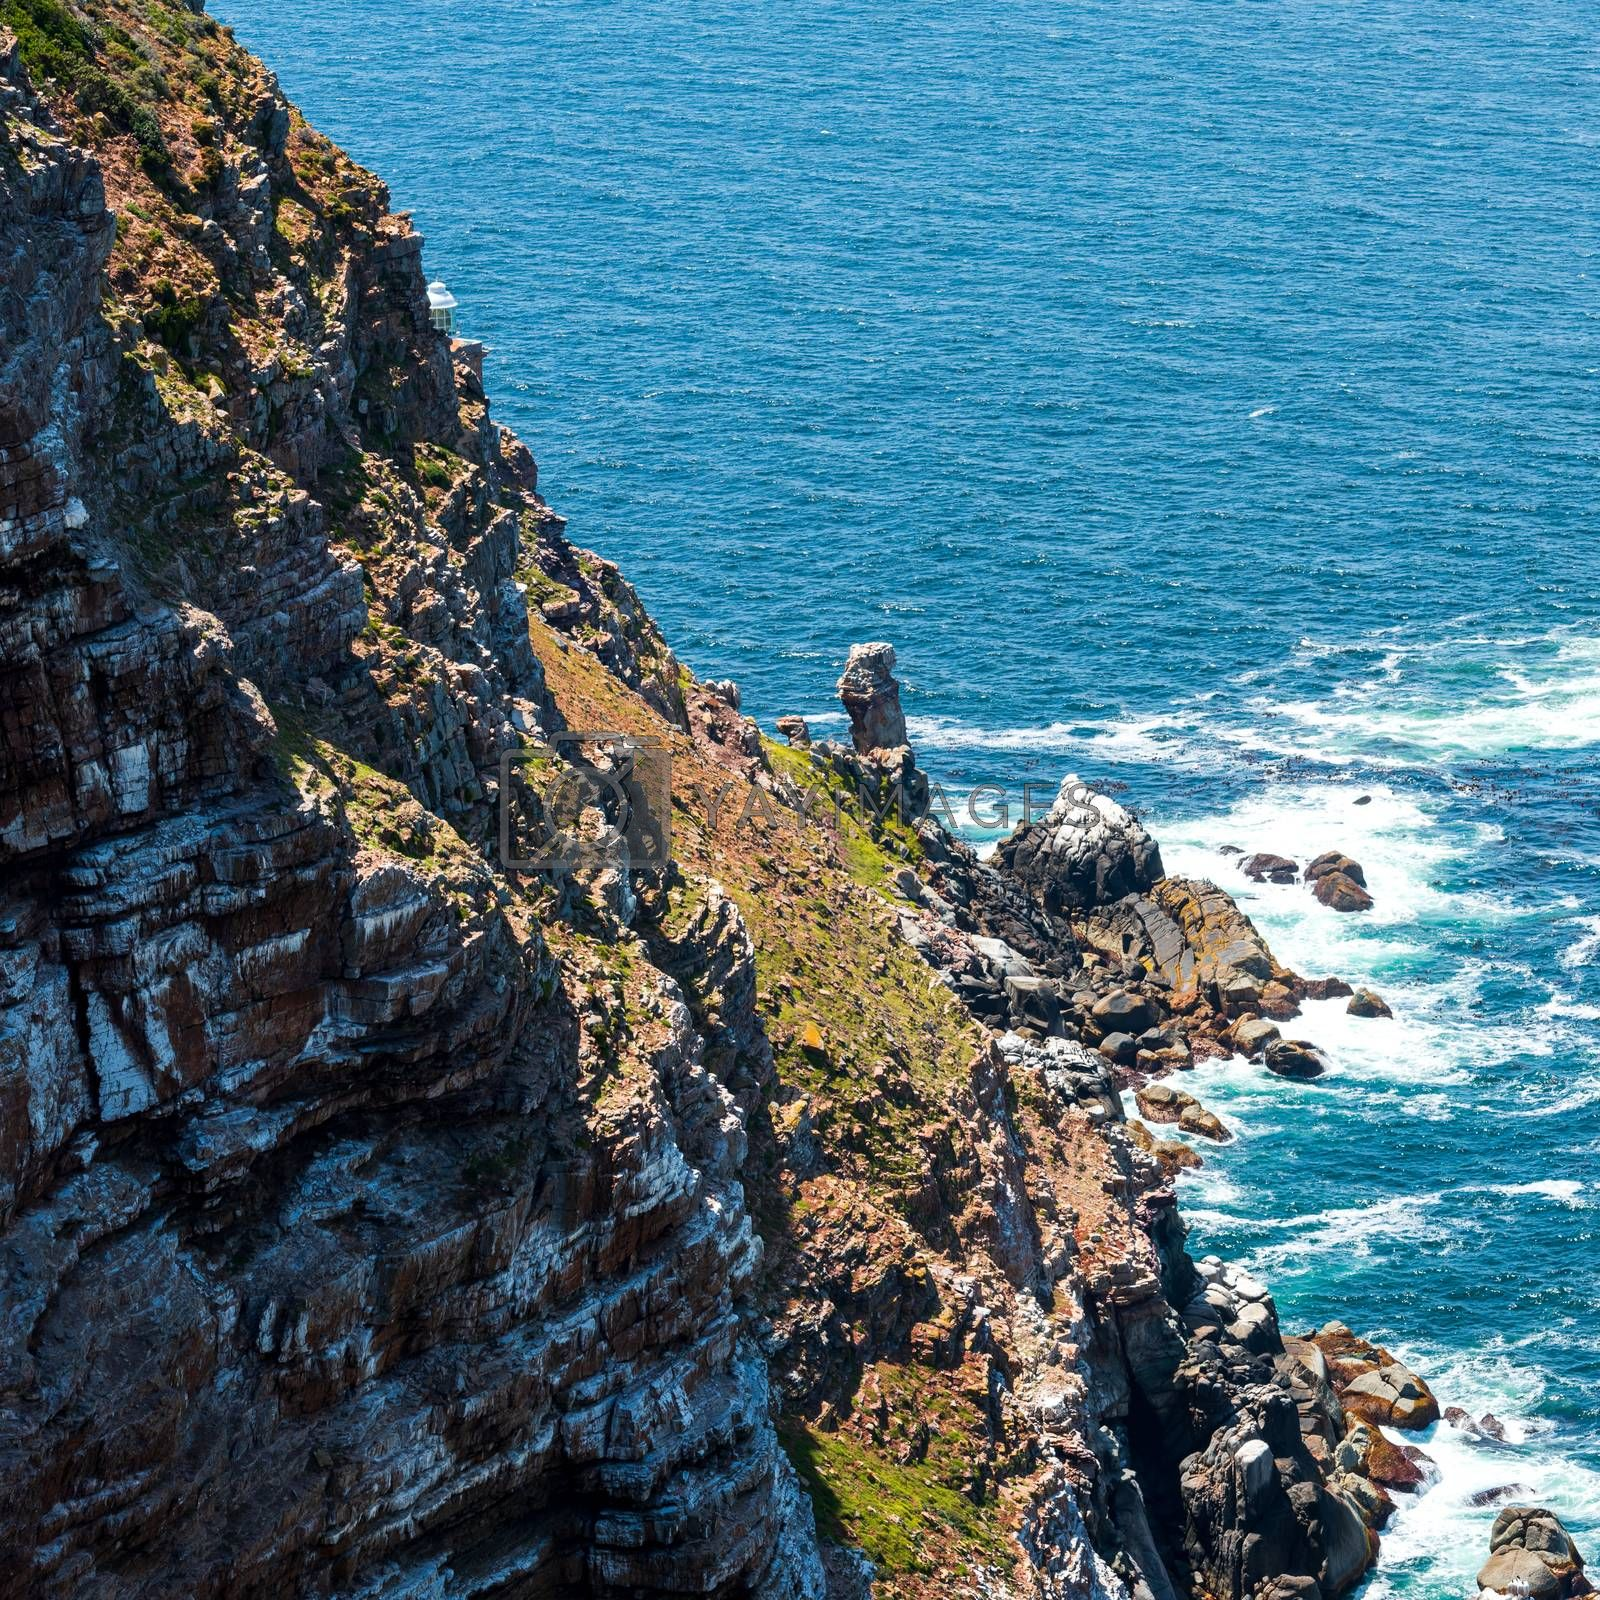 Looking down a very steep cliff to the ocean below at the Cape of Good Hope.